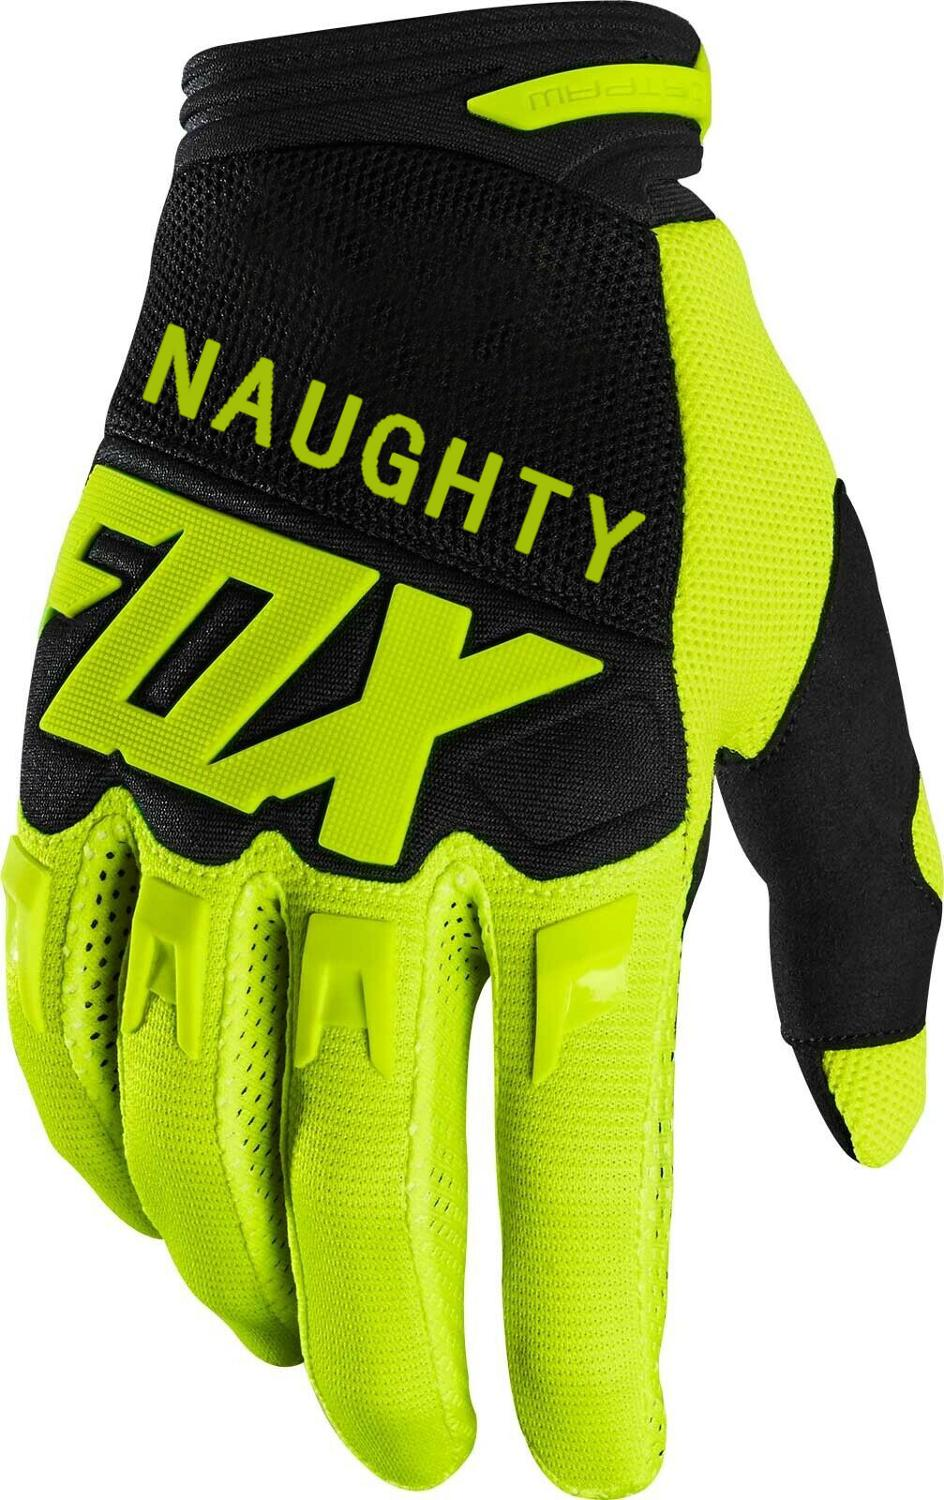 NAUGHTY FOX Fluo Black  Glove Motorbike Scooter Locomotive Downhill Bike Off-road Mens Gloves